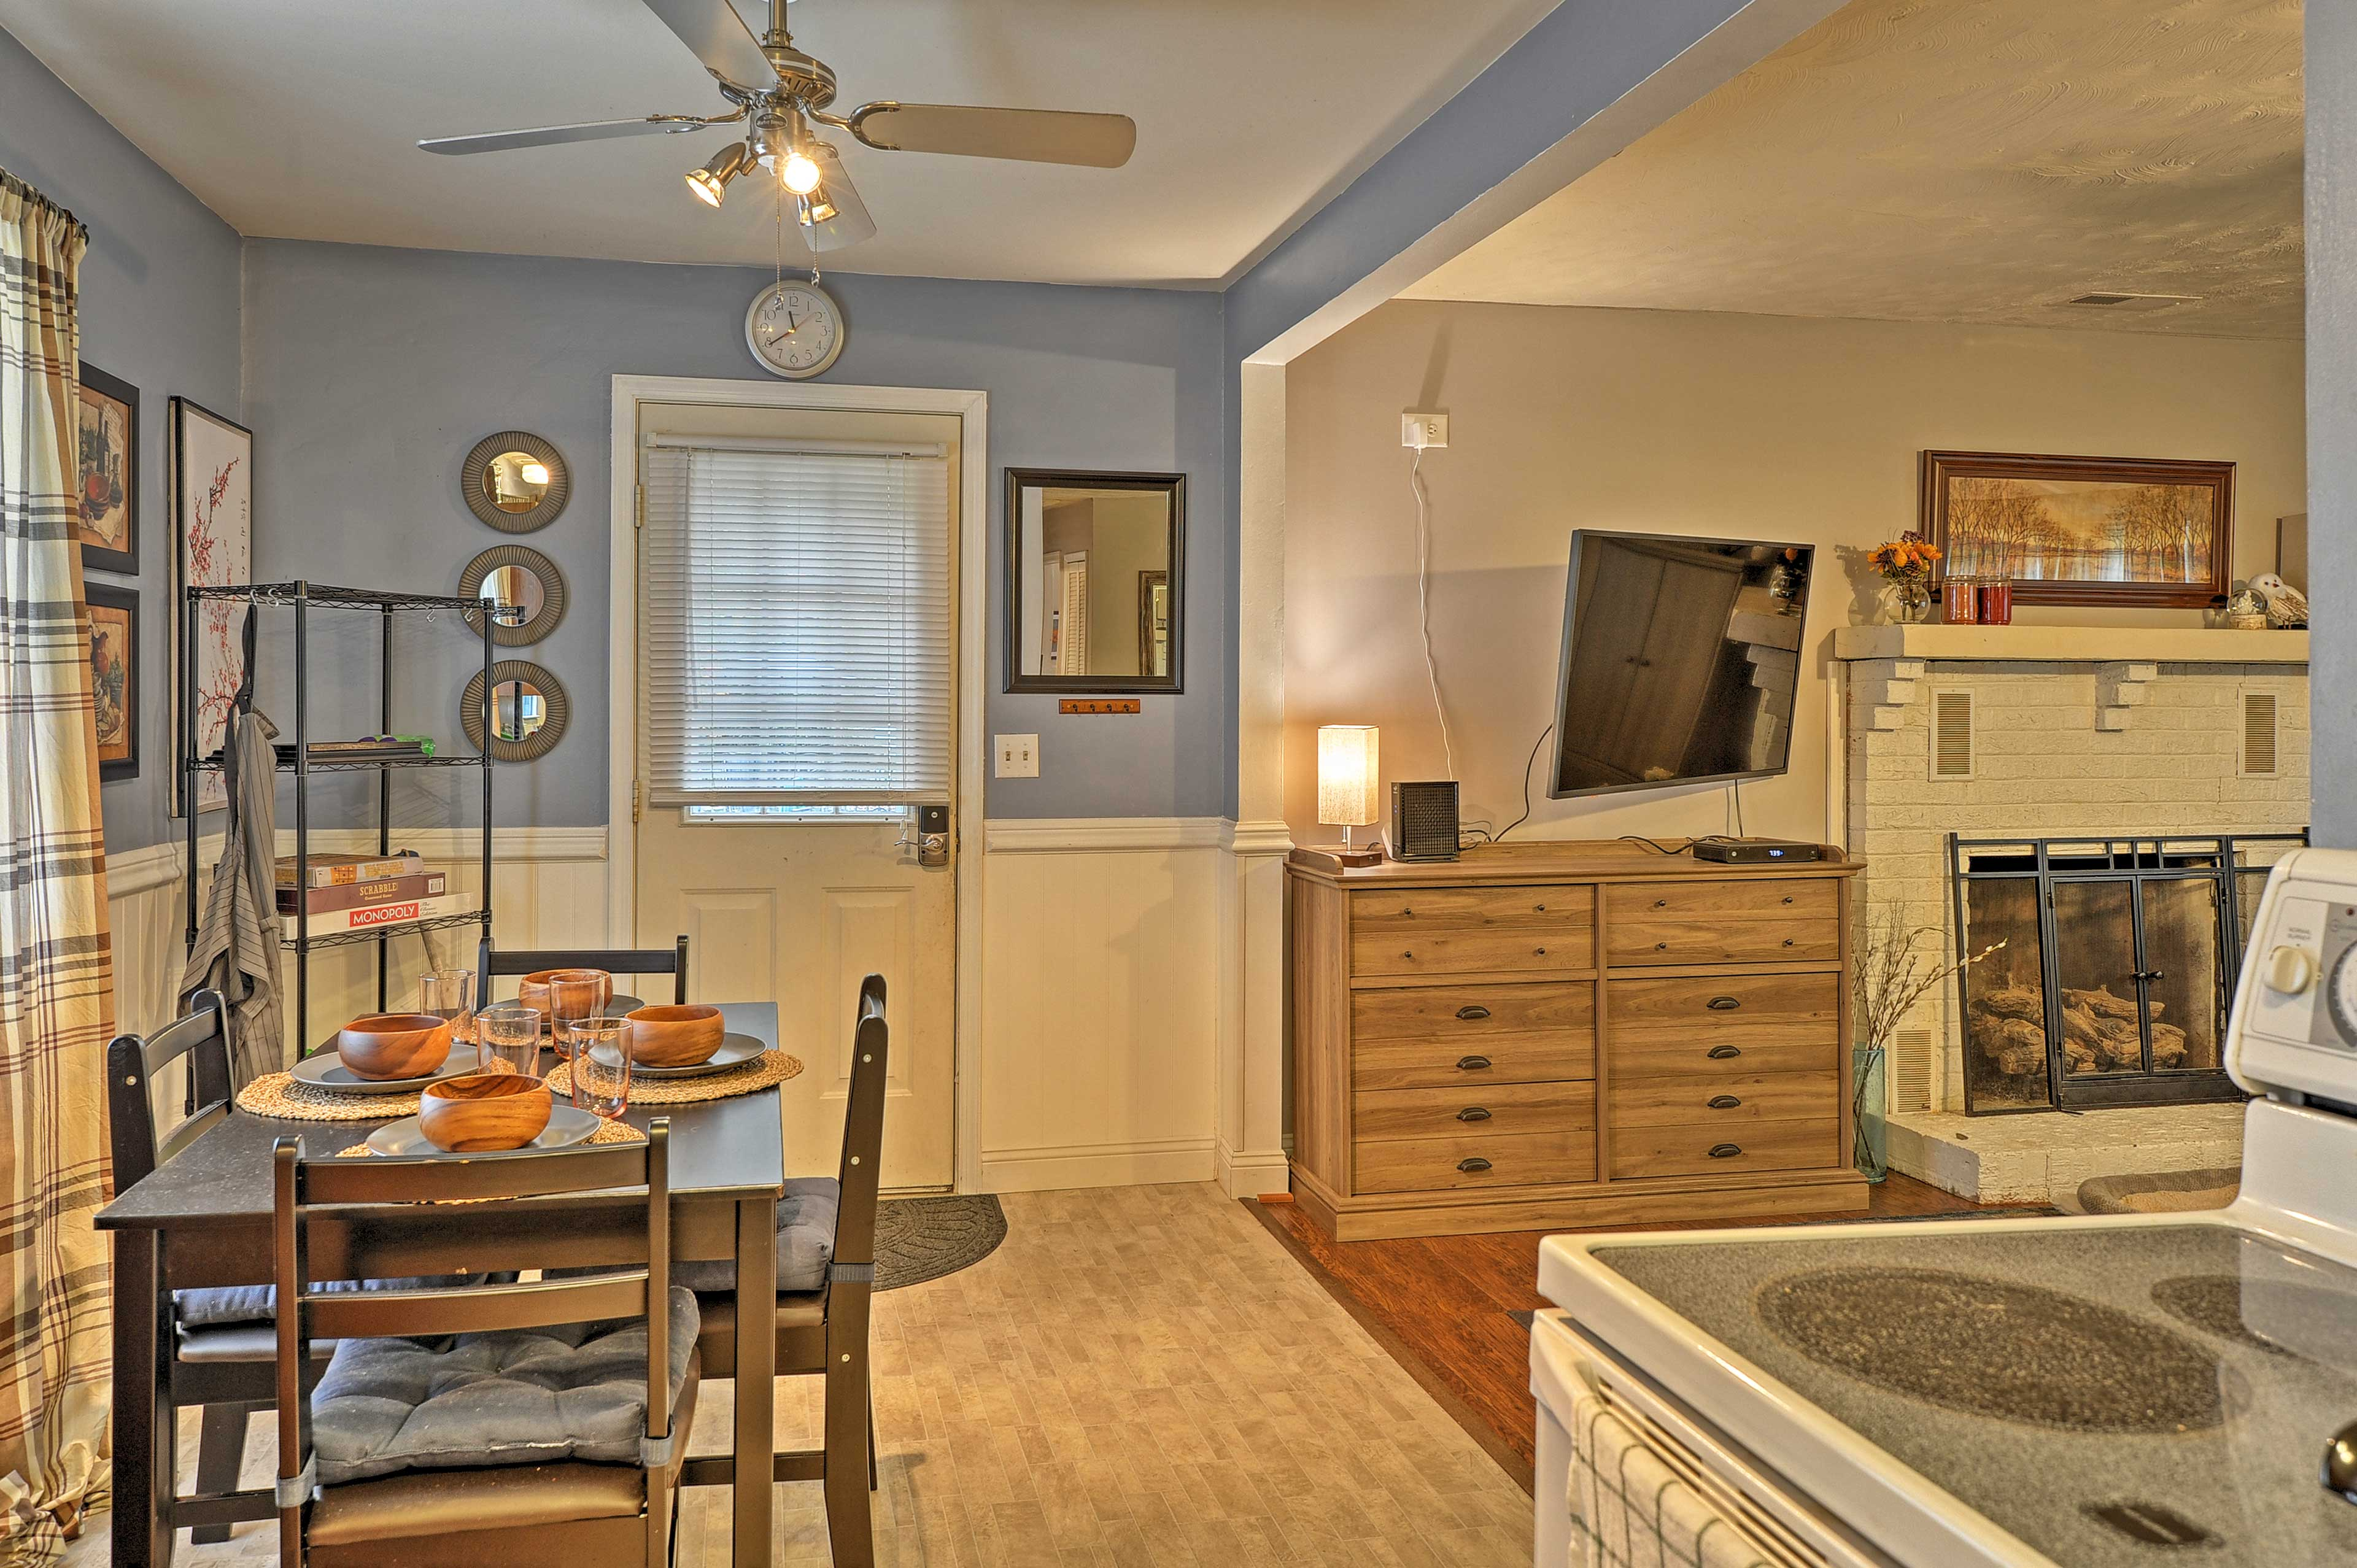 The living room flows effortlessly into the kitchen area.